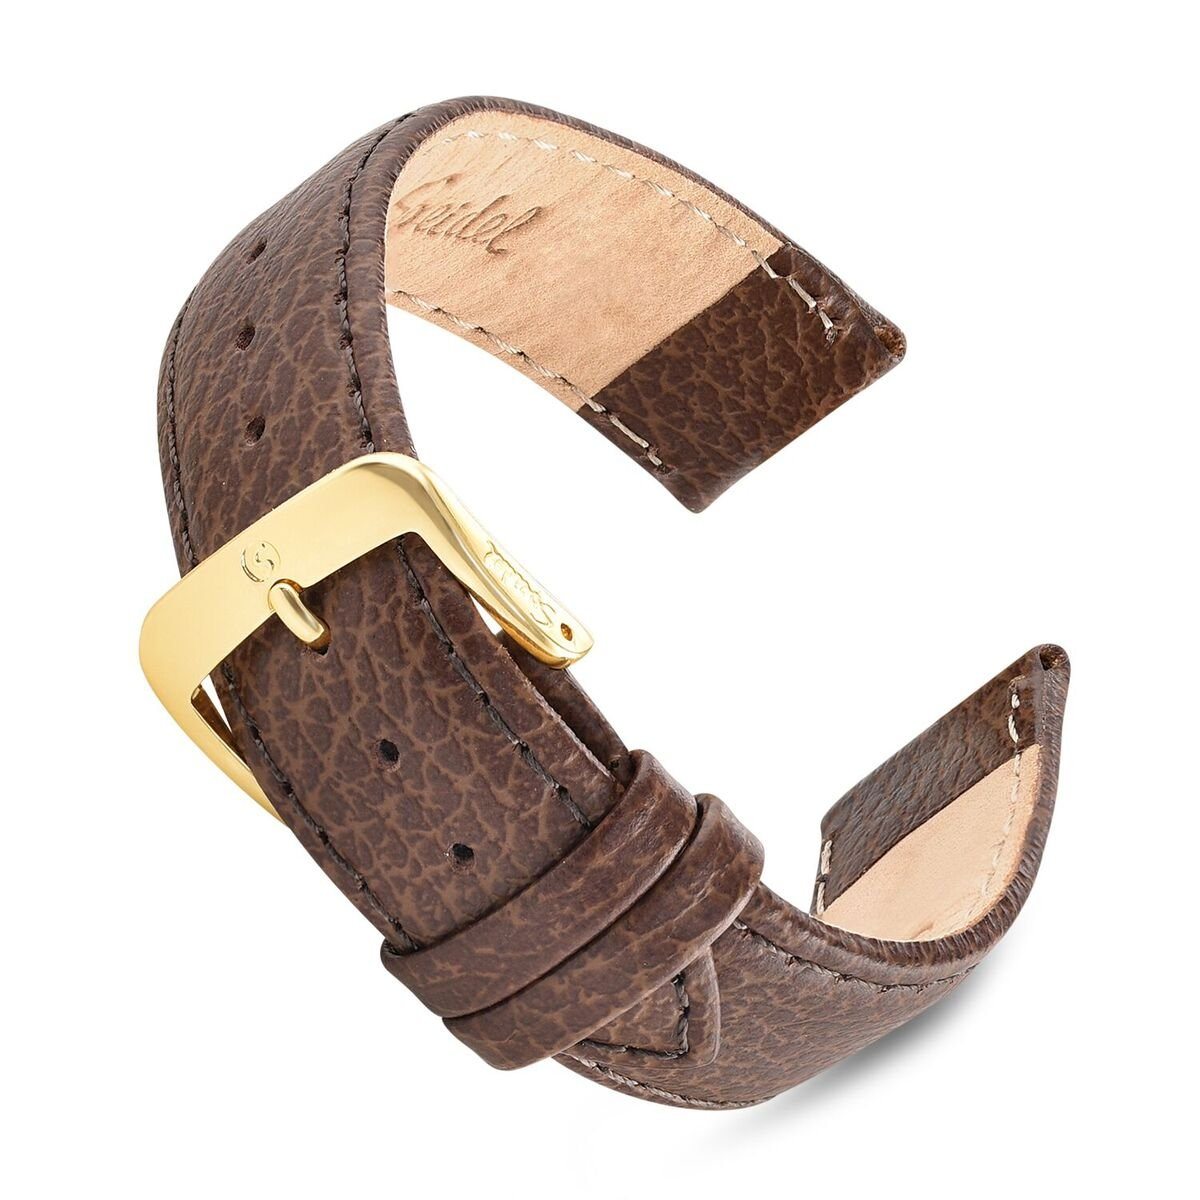 Speidel Genuine Leather Watch Band 16mm Brown Cowhide Stitched Replacement Strap with Tone on Tone Stitching, Stainless Steel Metal Buckle Clasp, Watchband Fits Most Watch Brands